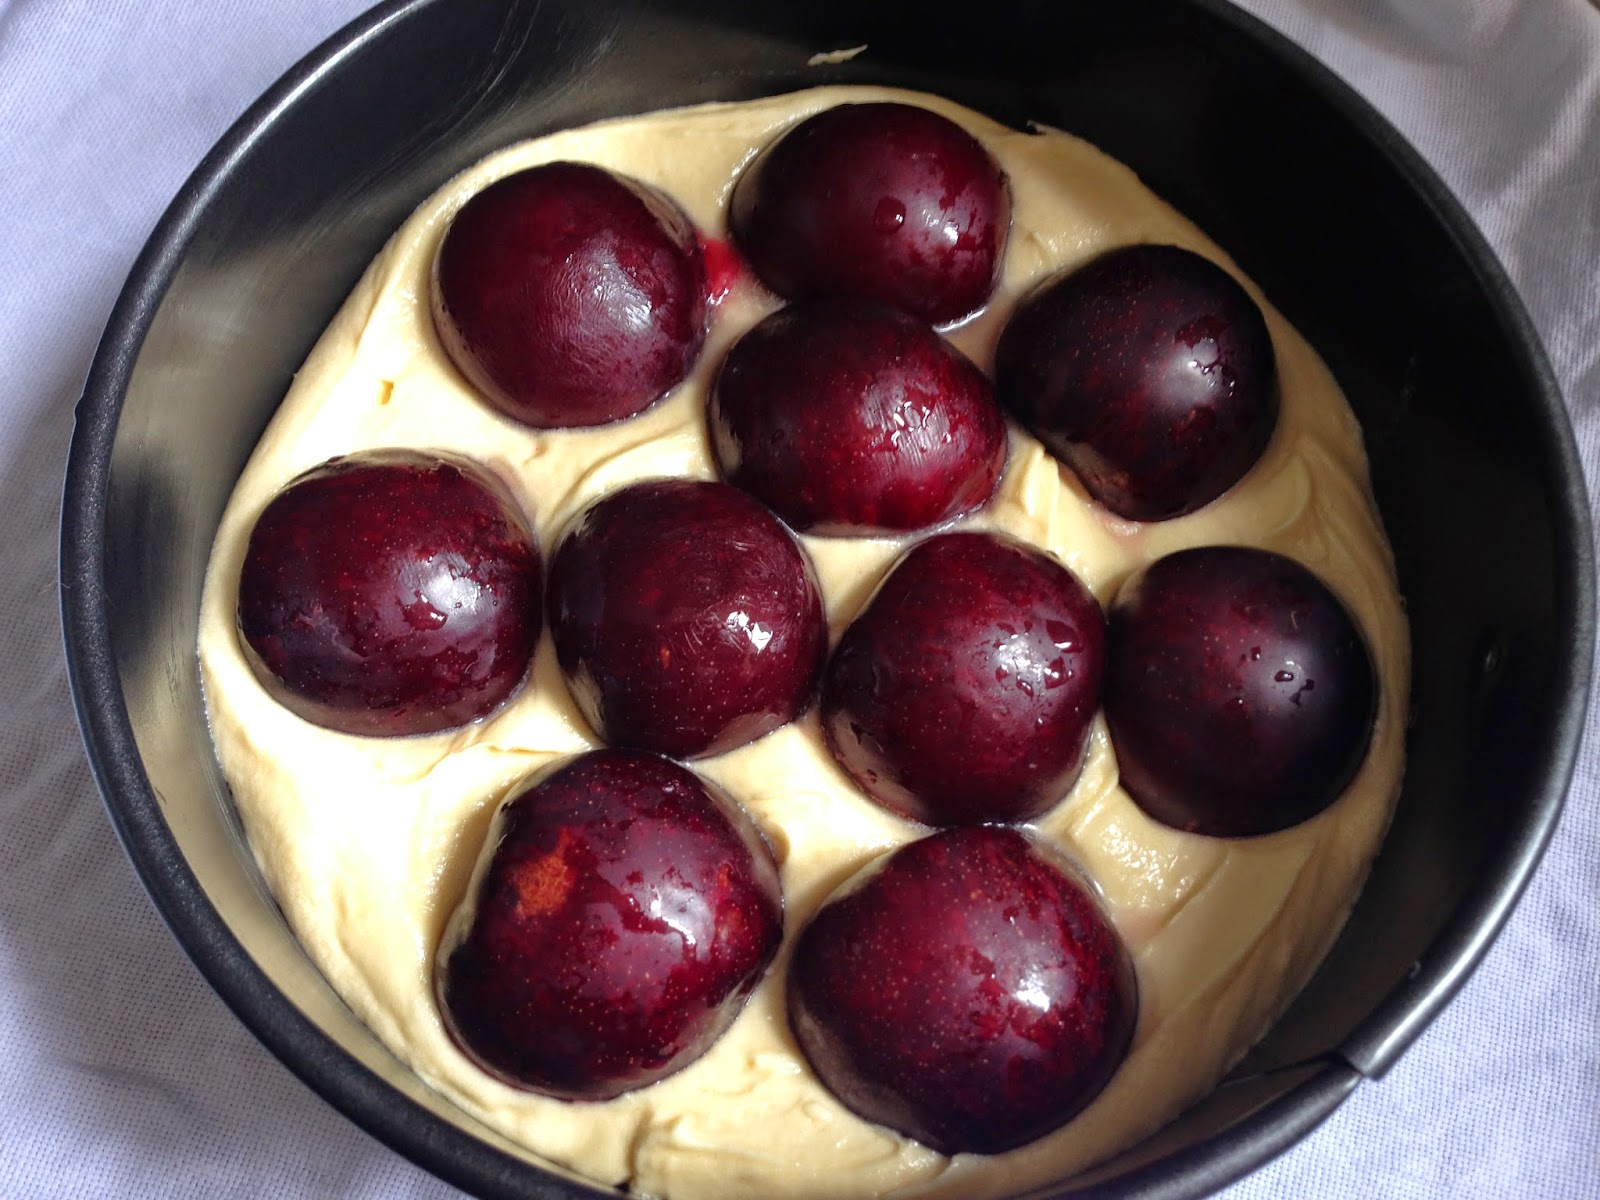 plum torte from the NYTimes by Marian Burros